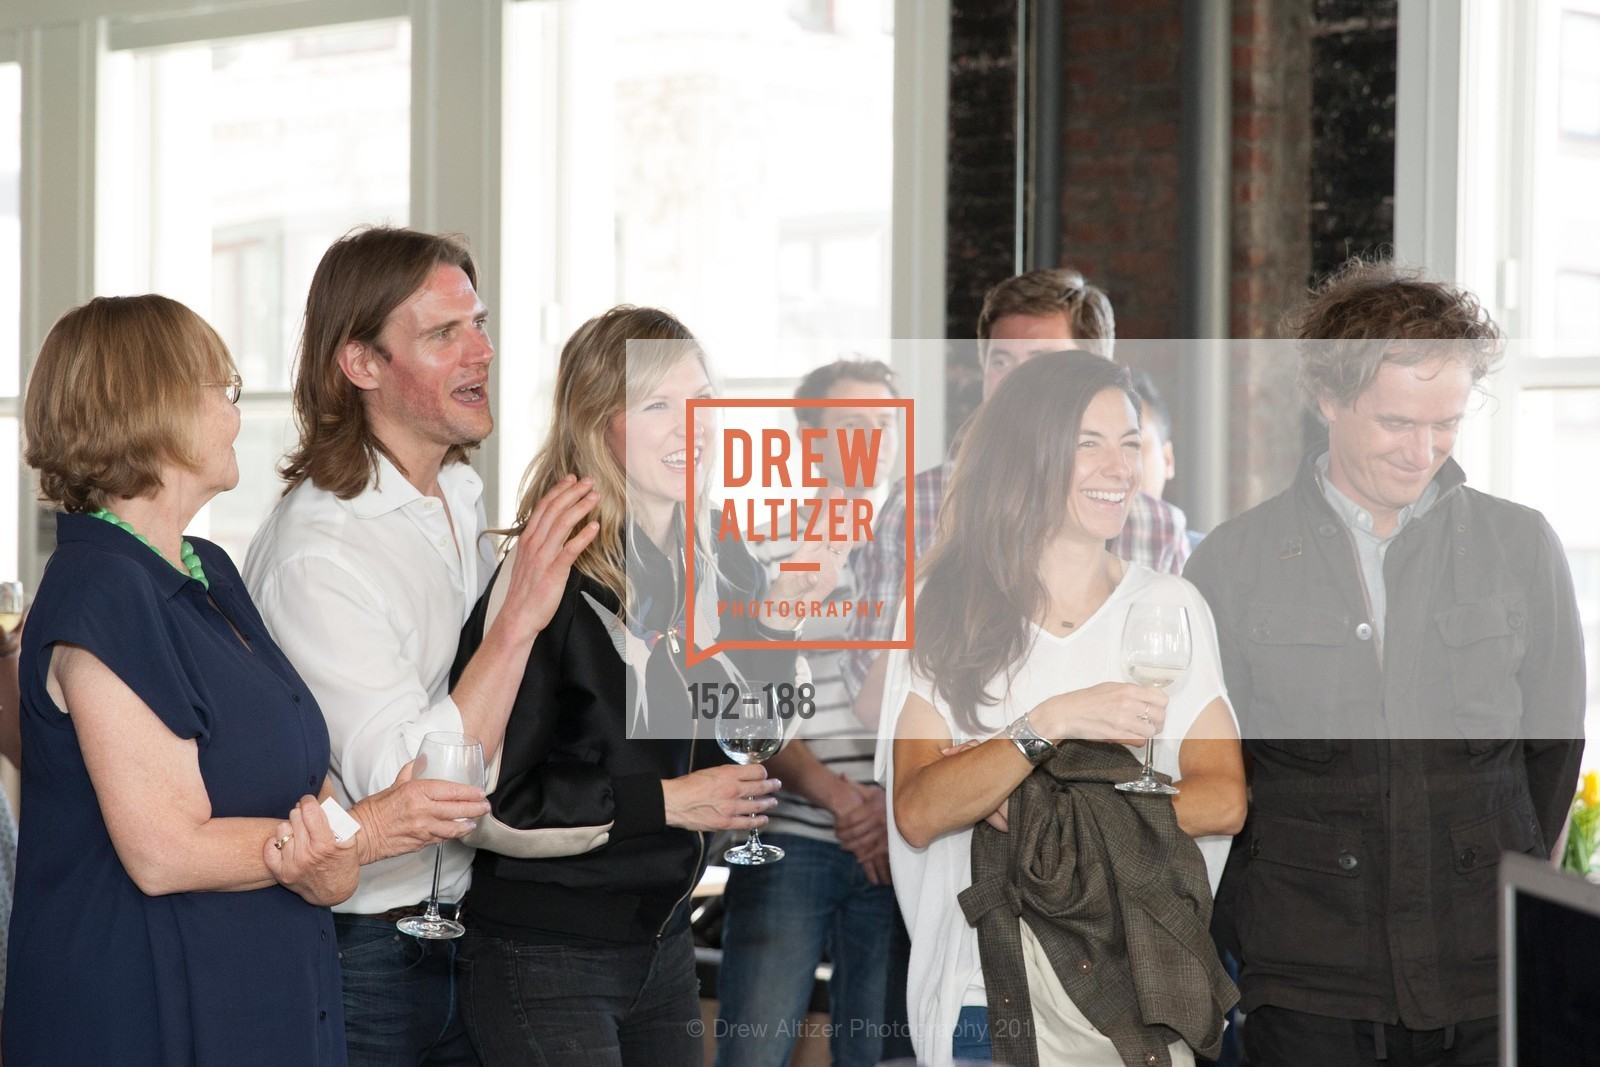 Cathy McLain, Brad Murray, Lynn Gurich, Sabrina Buell, Yves Behar, Twigtale Celebration Hosted By Zem Joaquin, Medium. 760 Market St, June 24th, 2015,Drew Altizer, Drew Altizer Photography, full-service agency, private events, San Francisco photographer, photographer california